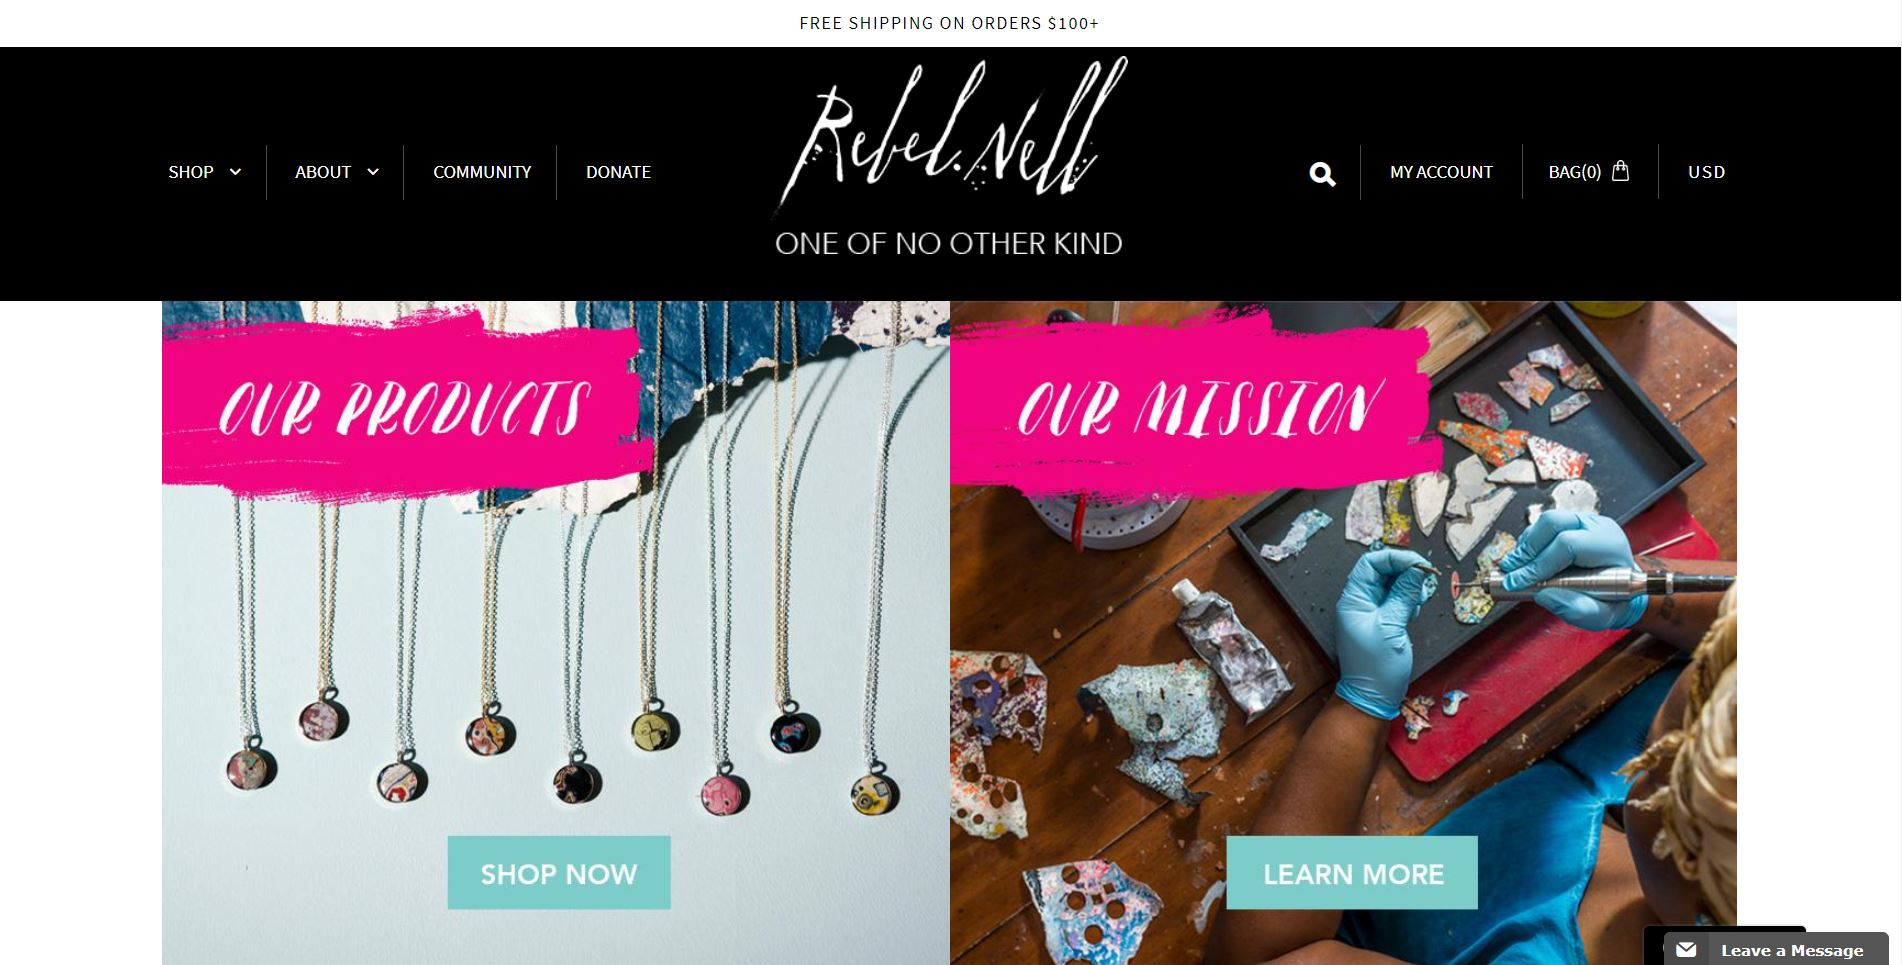 Best Shopify theme for jewelry can be found on the Shopify website.